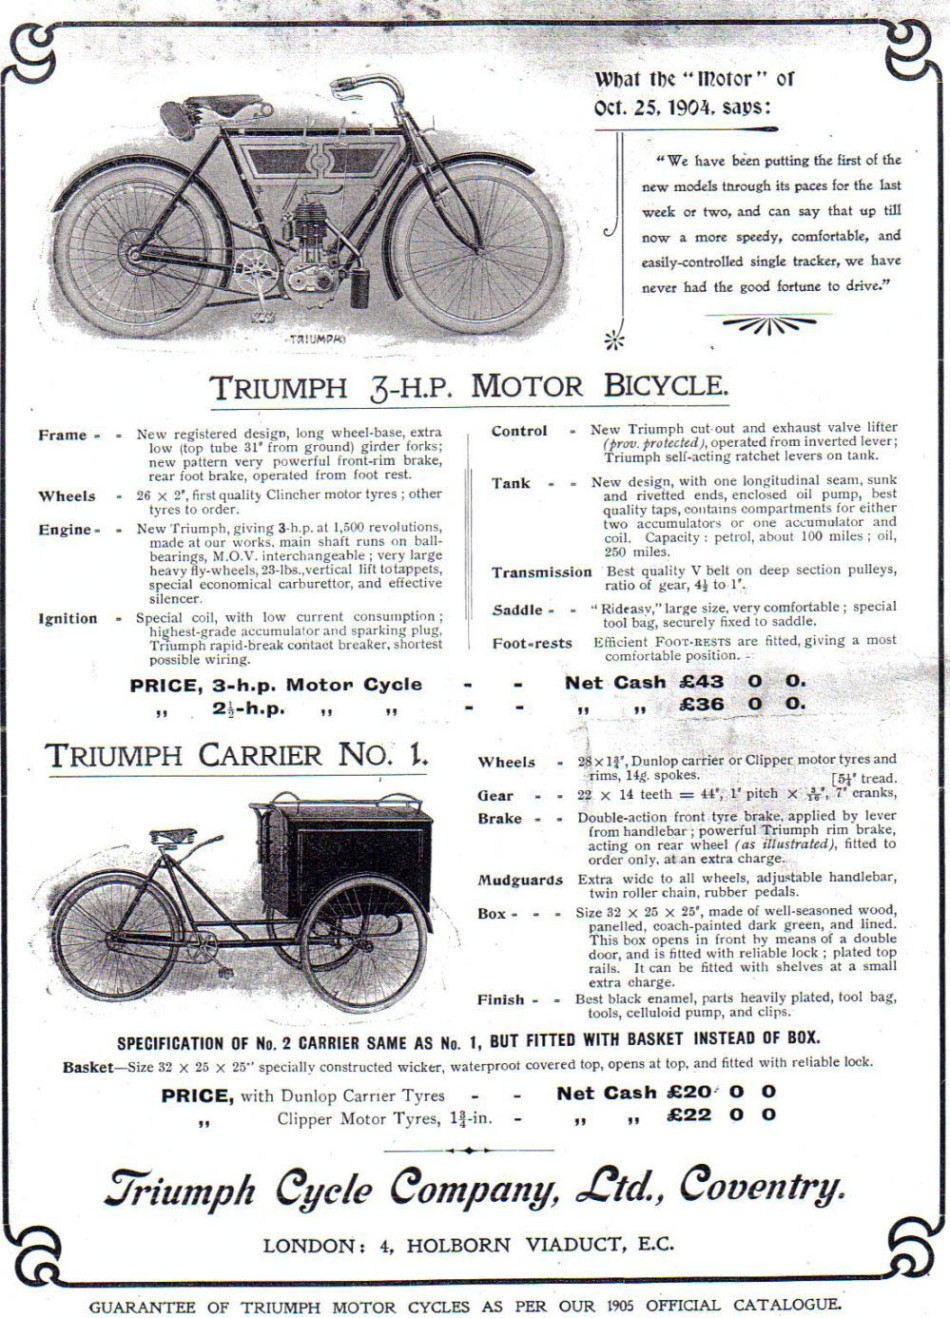 1904 triumph motorcycle